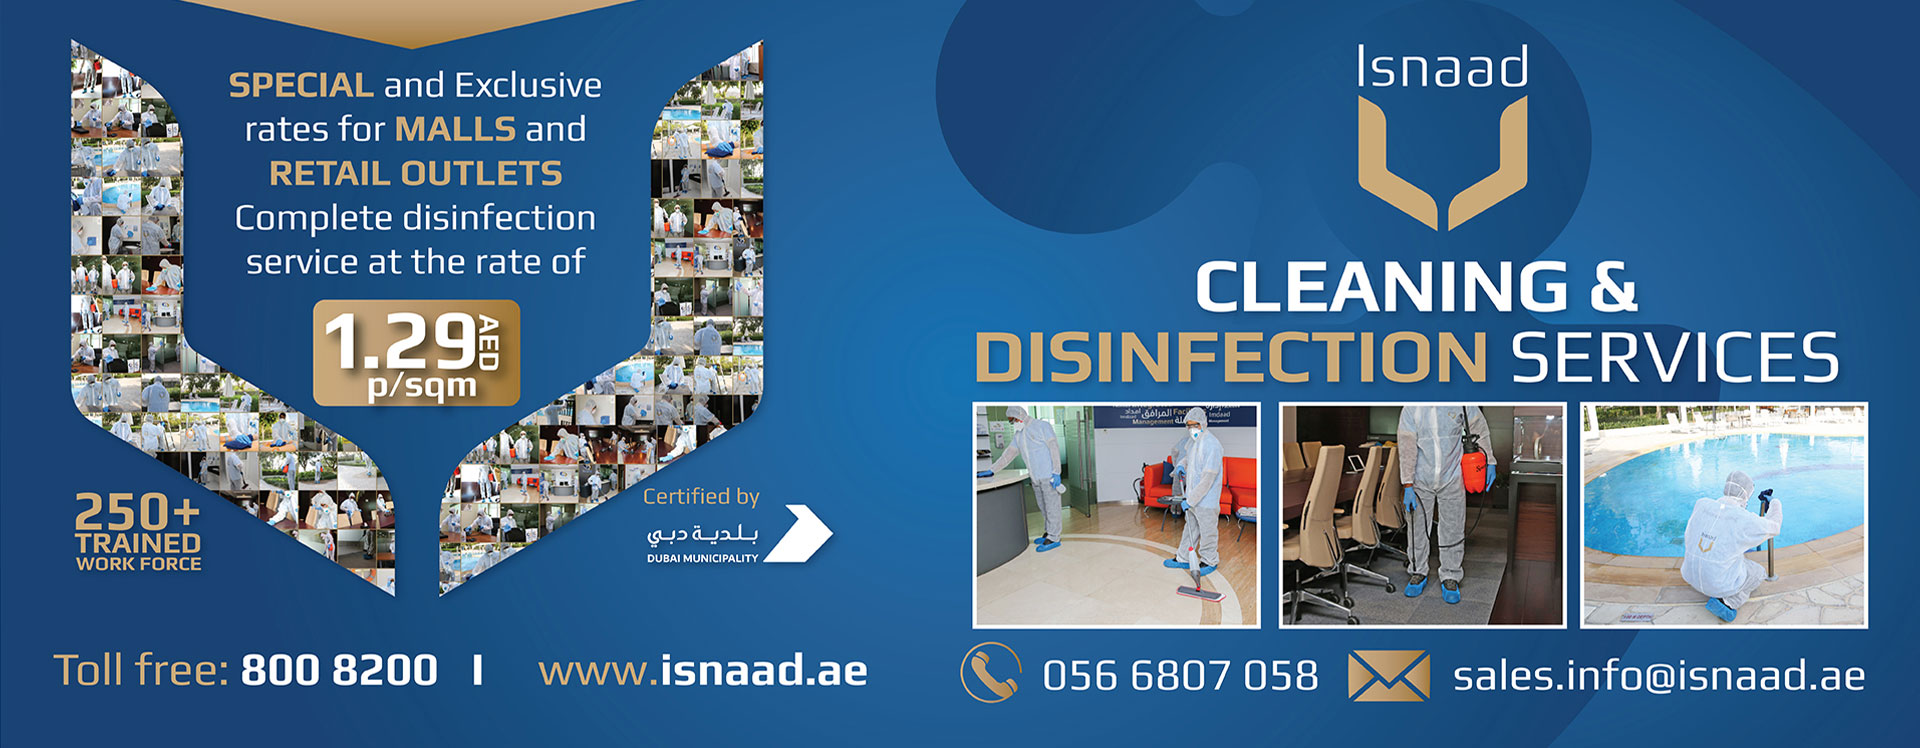 Cleaning & Disinfection Services